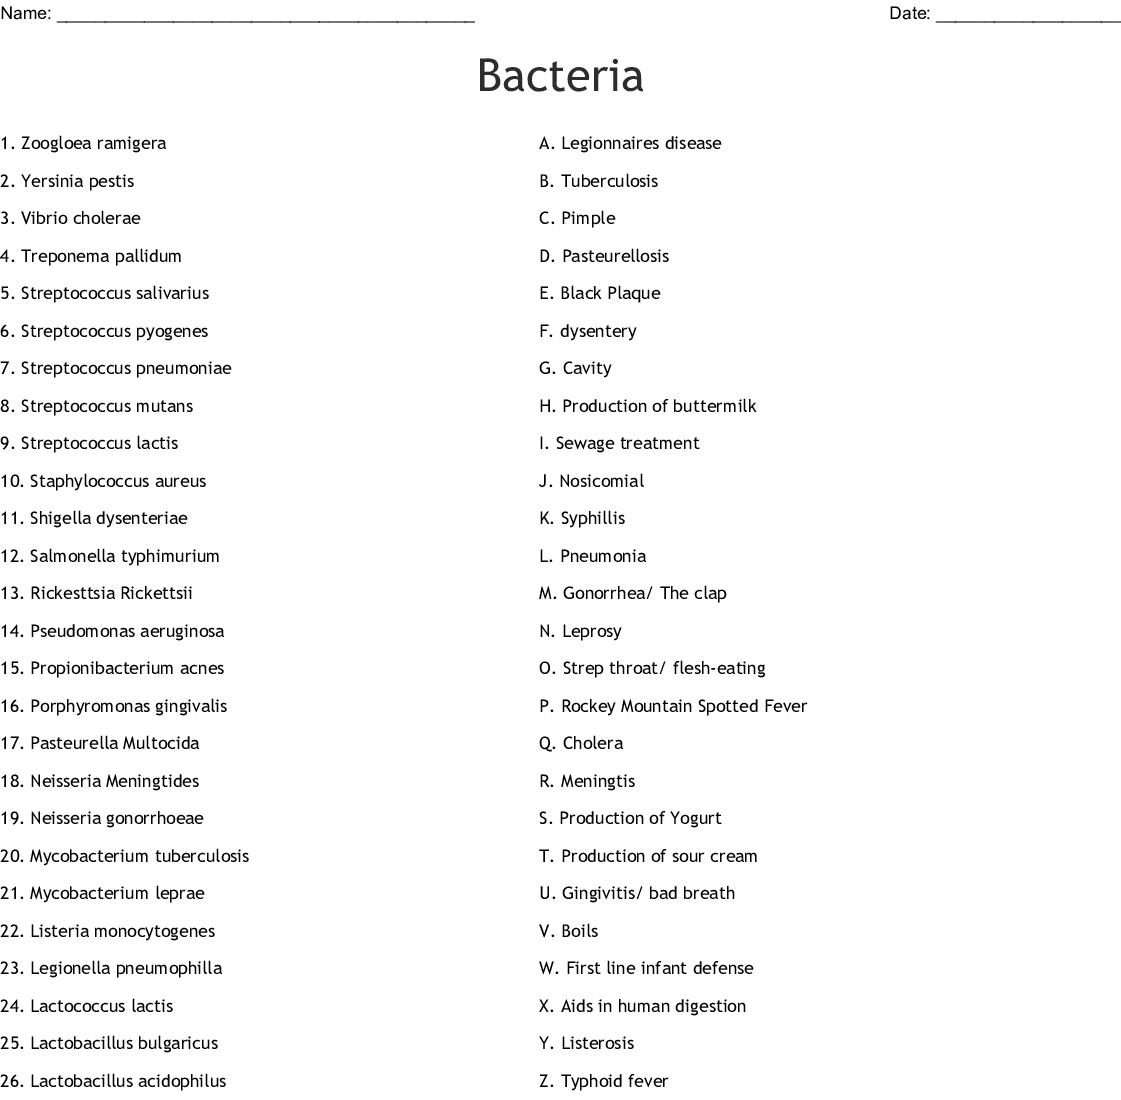 Bacteria Word Search